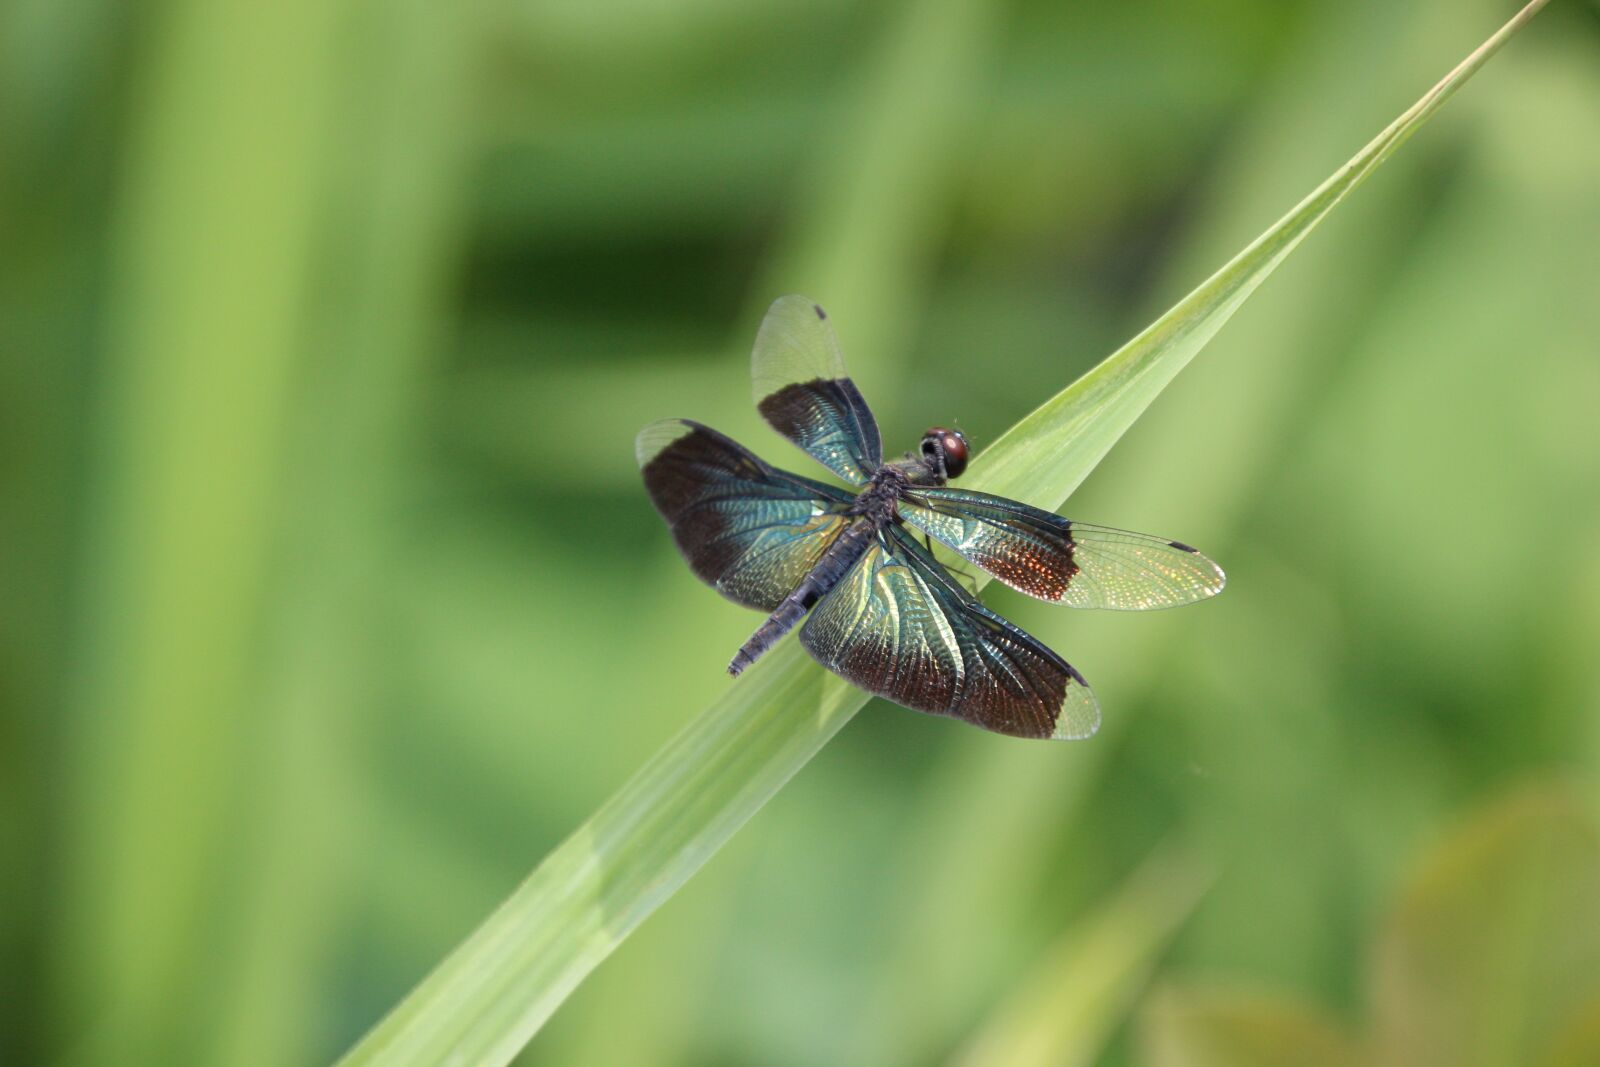 """Canon EOS 600D (Rebel EOS T3i / EOS Kiss X5) sample photo. """"Grass, insect, dragonfly"""" photography"""